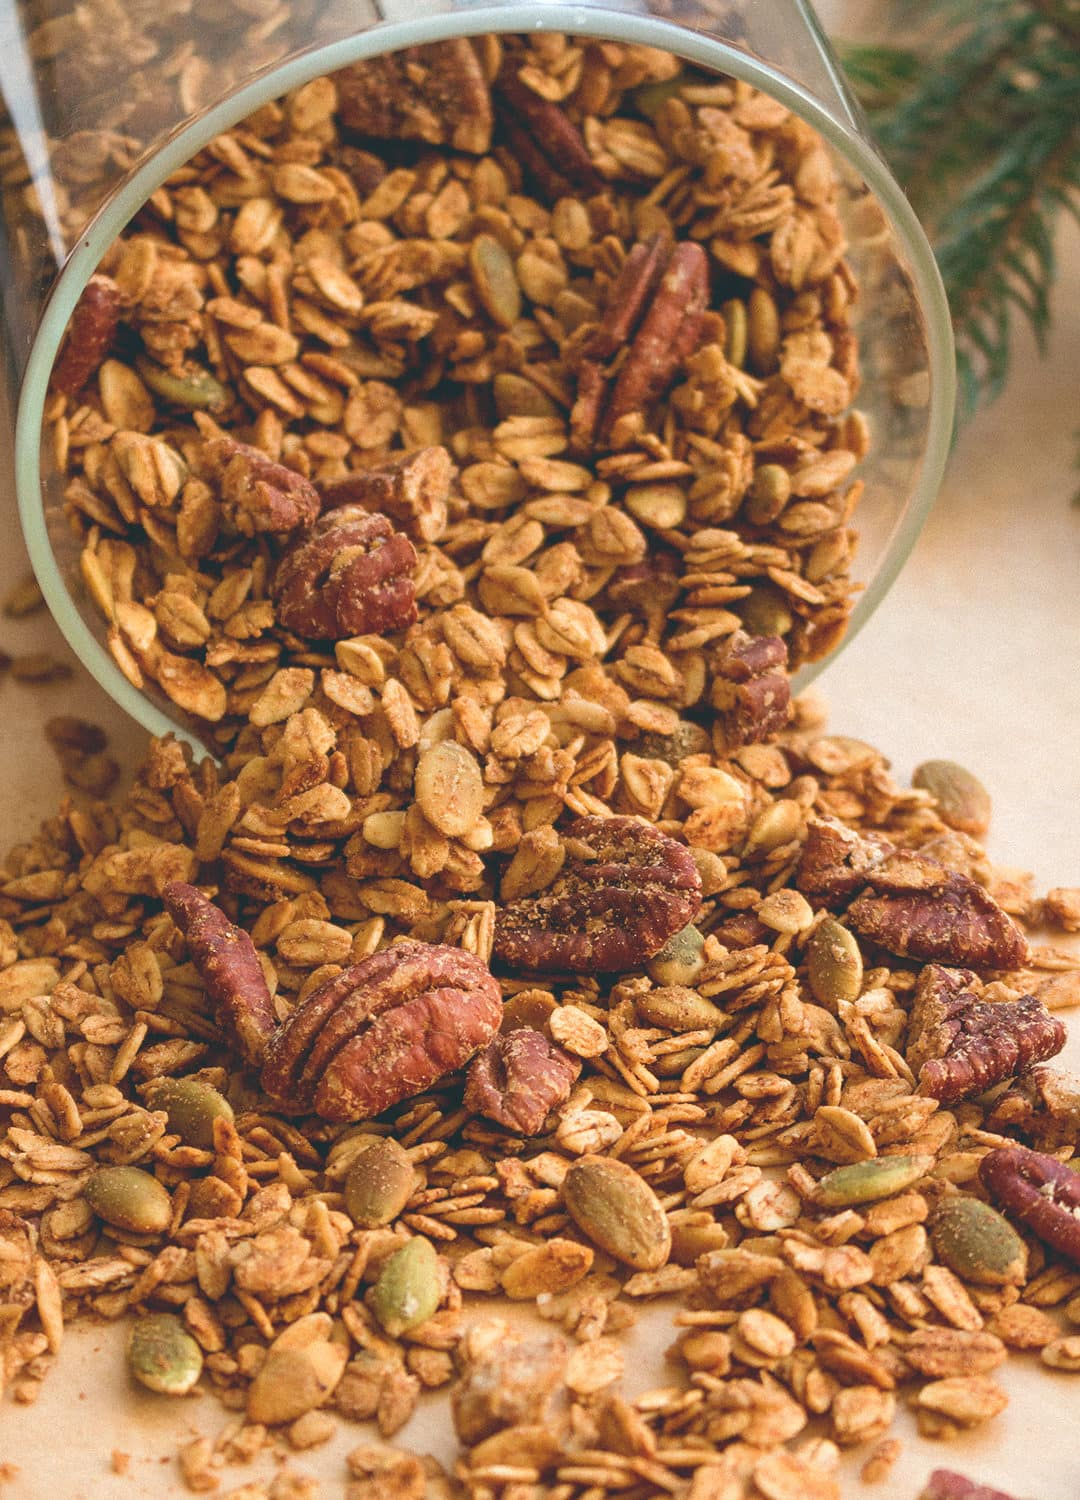 Gingerbread Granola - delicious and healthy alternative to store bought granola that's usually full of sugar. I love this recipe! Gingerbread flavored granola is heavenly, it's the ultimate Christmas snack. | thehealthfulideas.com